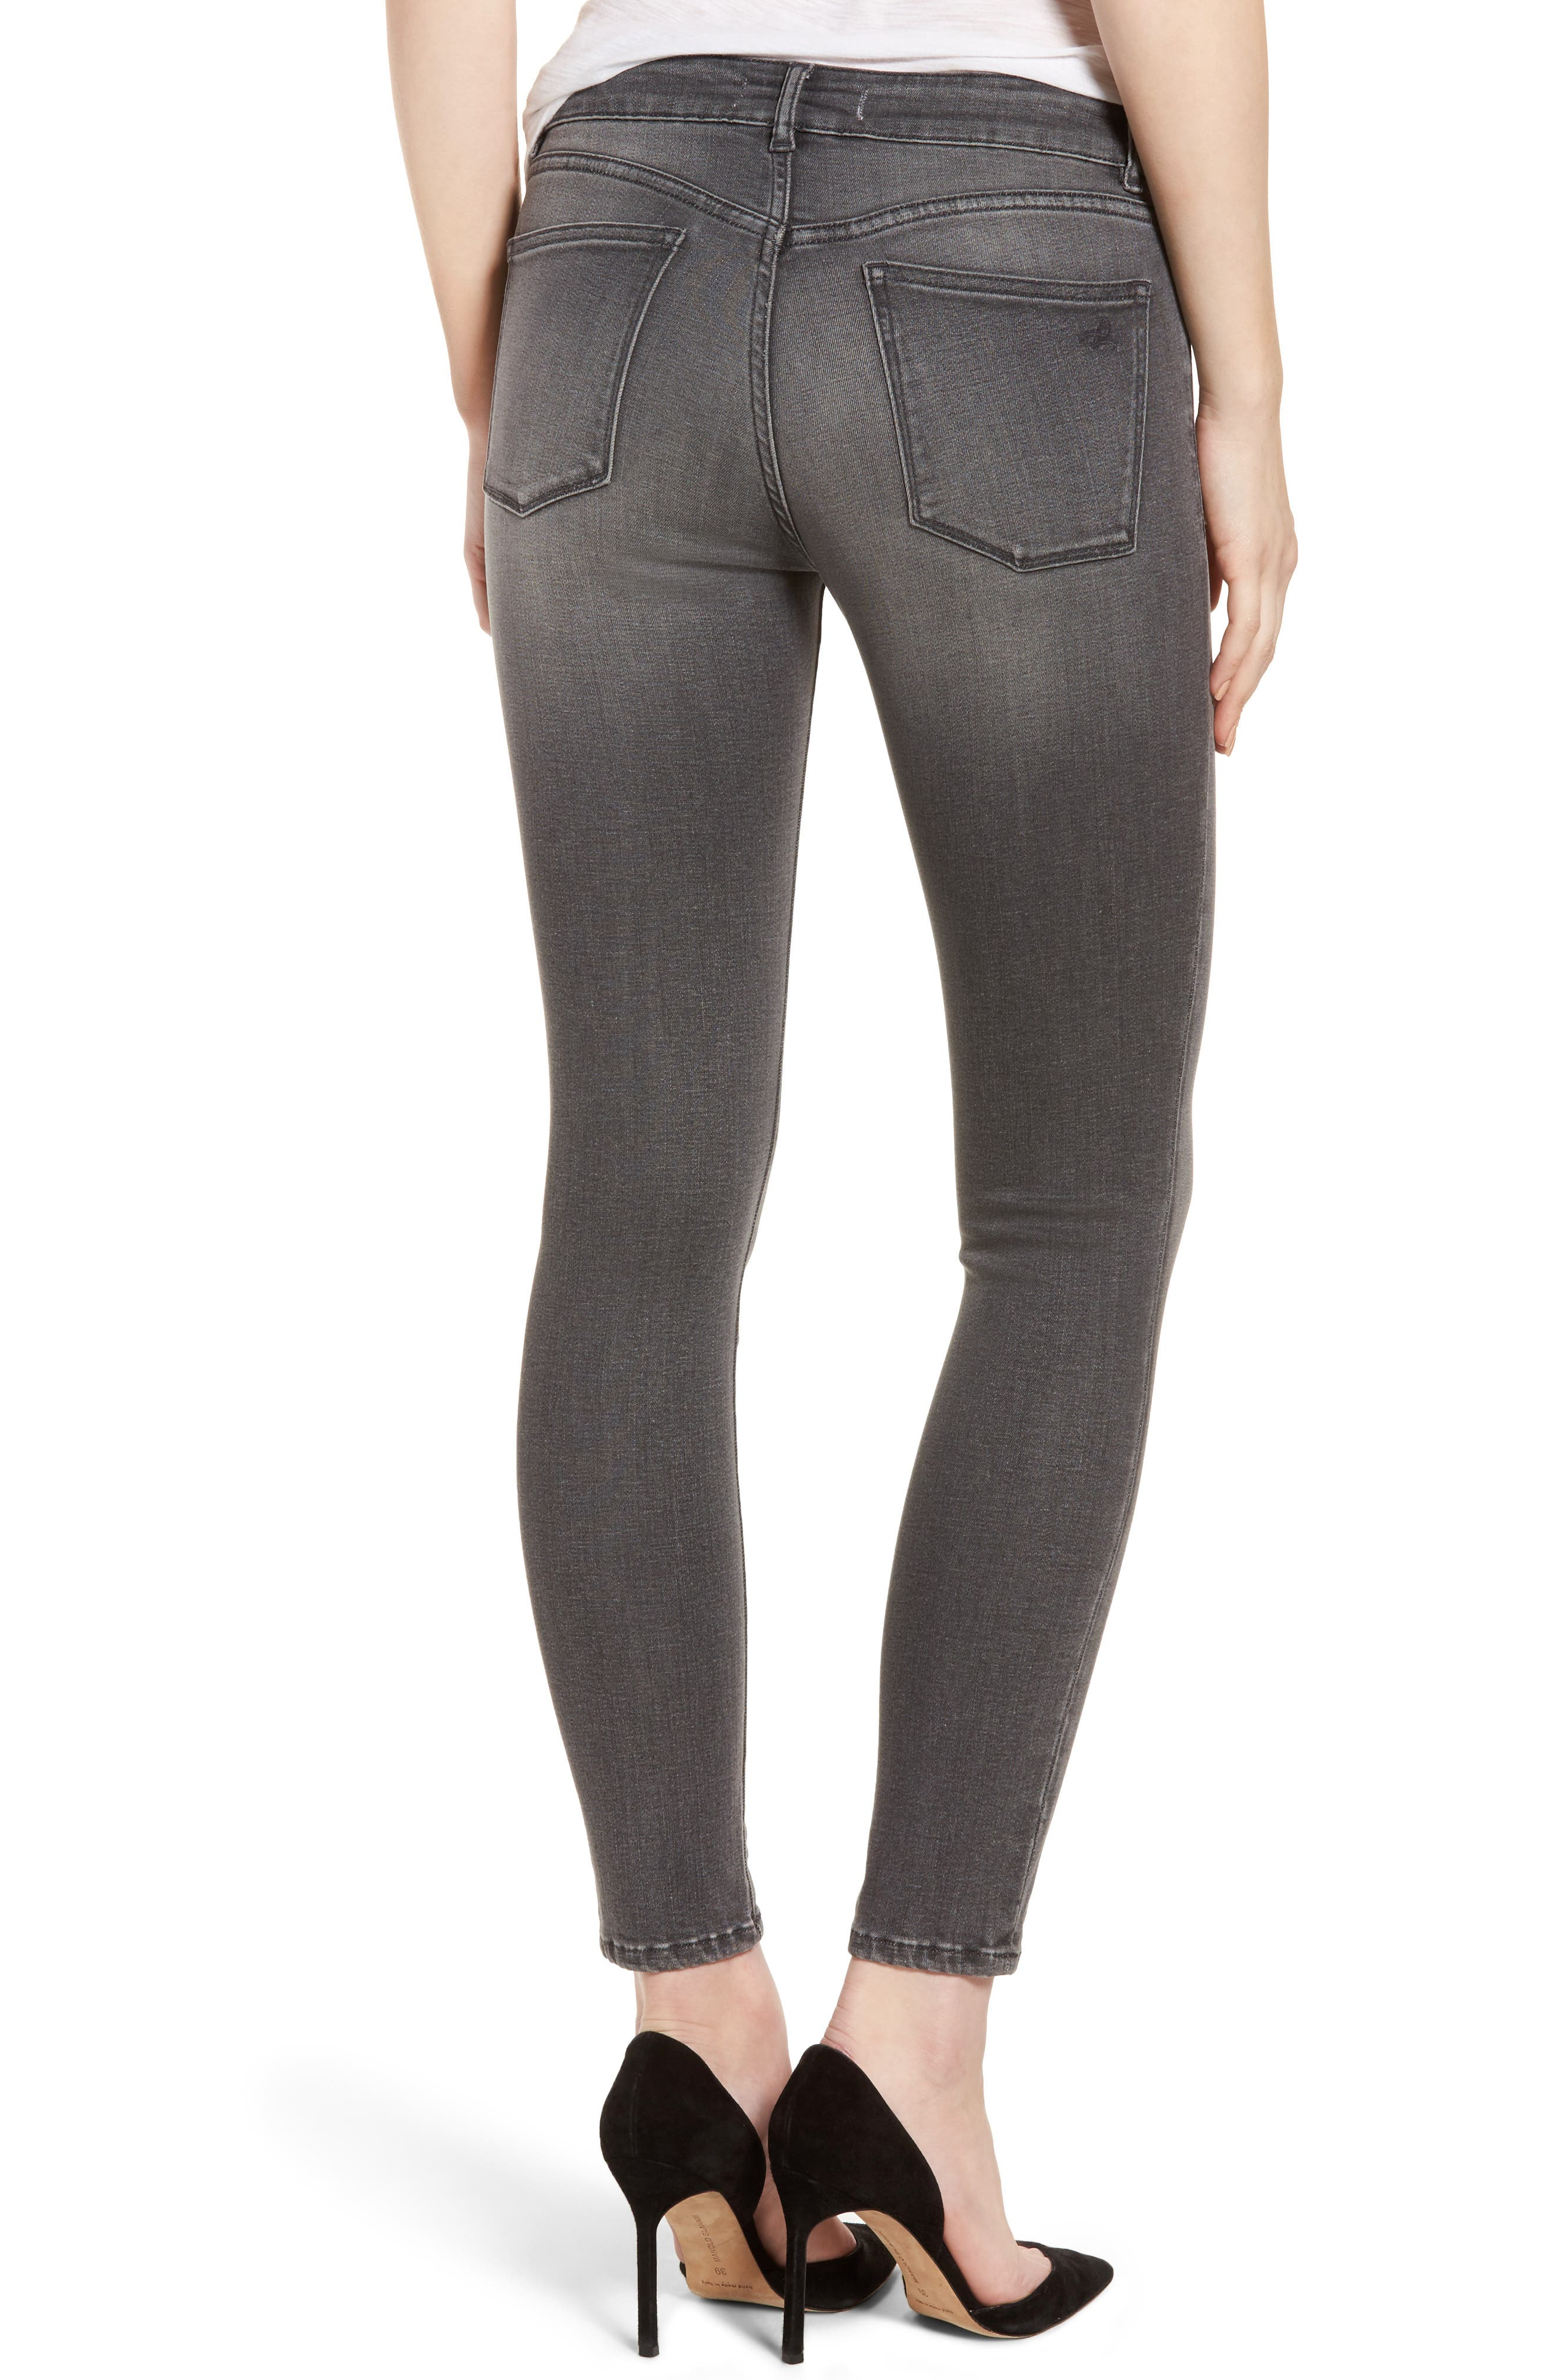 Alternate Image 2  - DL1961 Margaux Instasculpt Ankle Skinny Jeans (Drizzle)